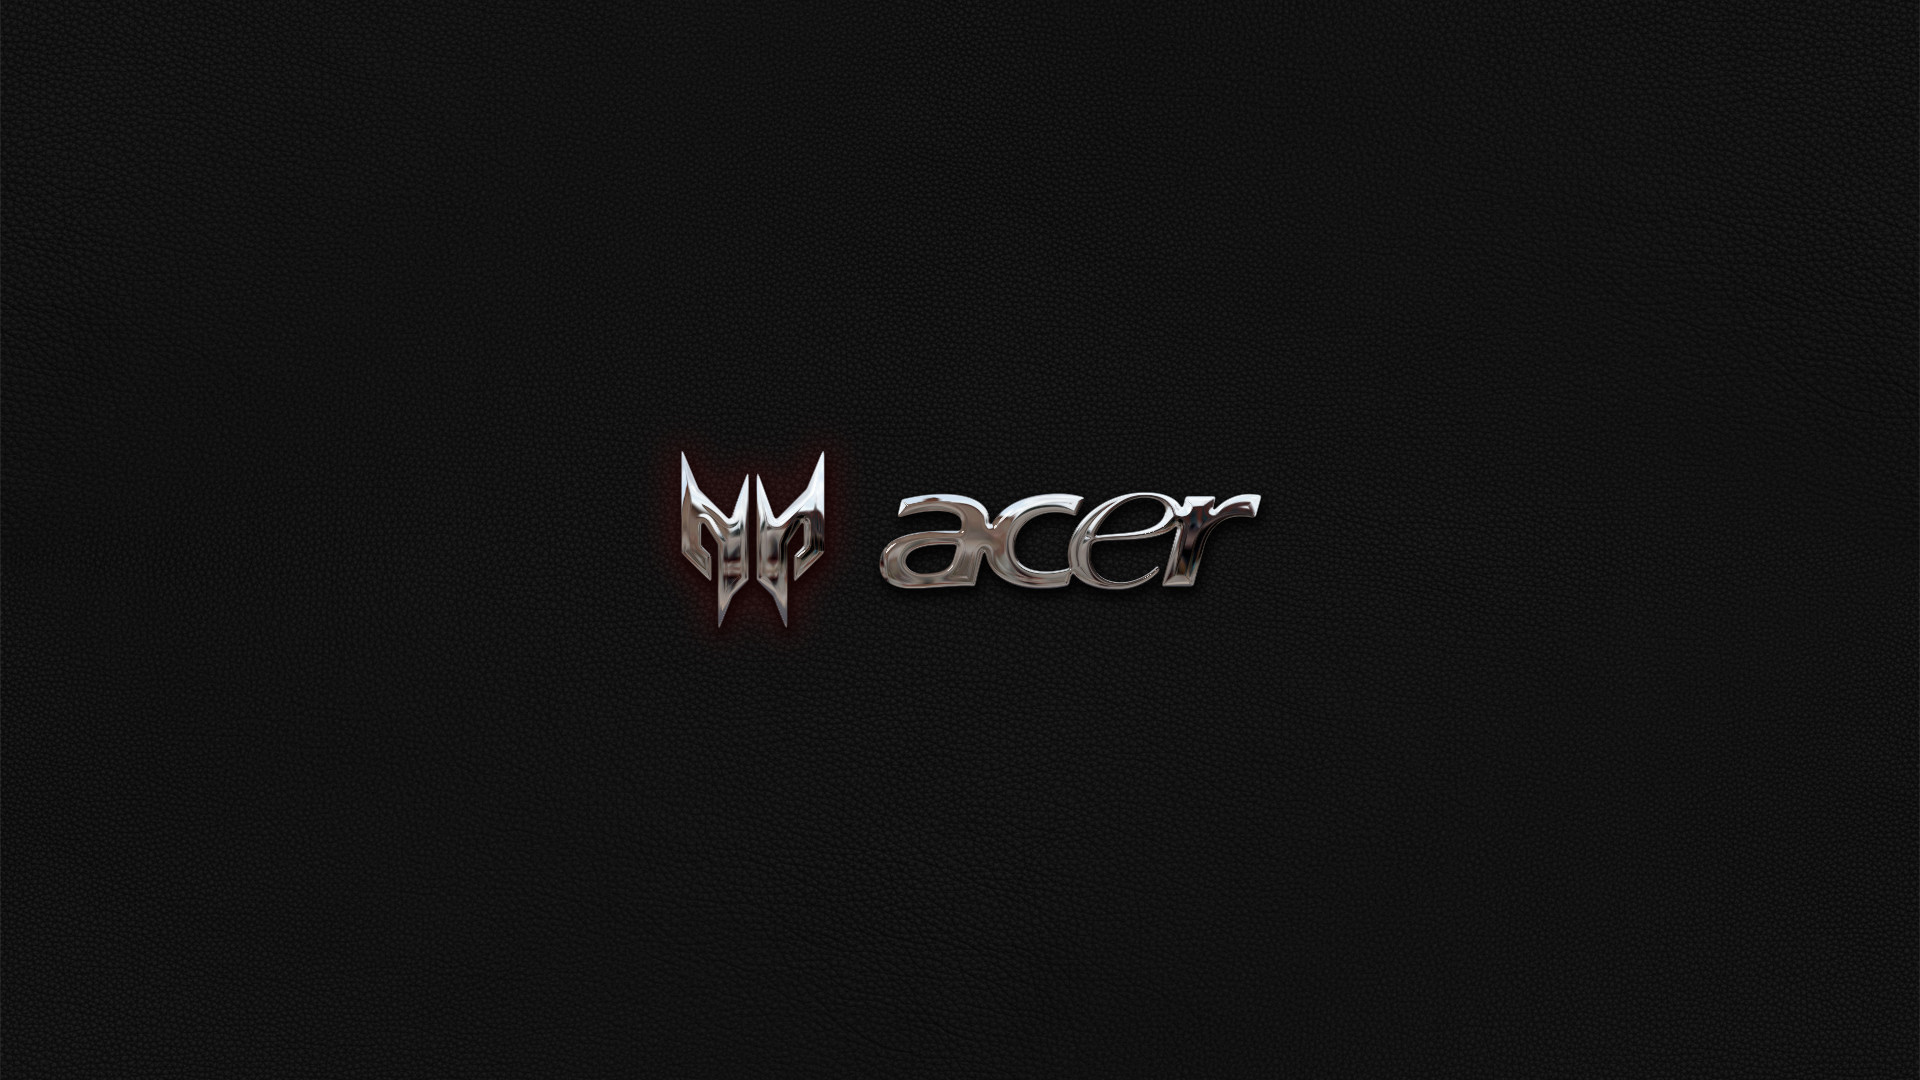 Acer Predator Wallpapers 67 Pictures